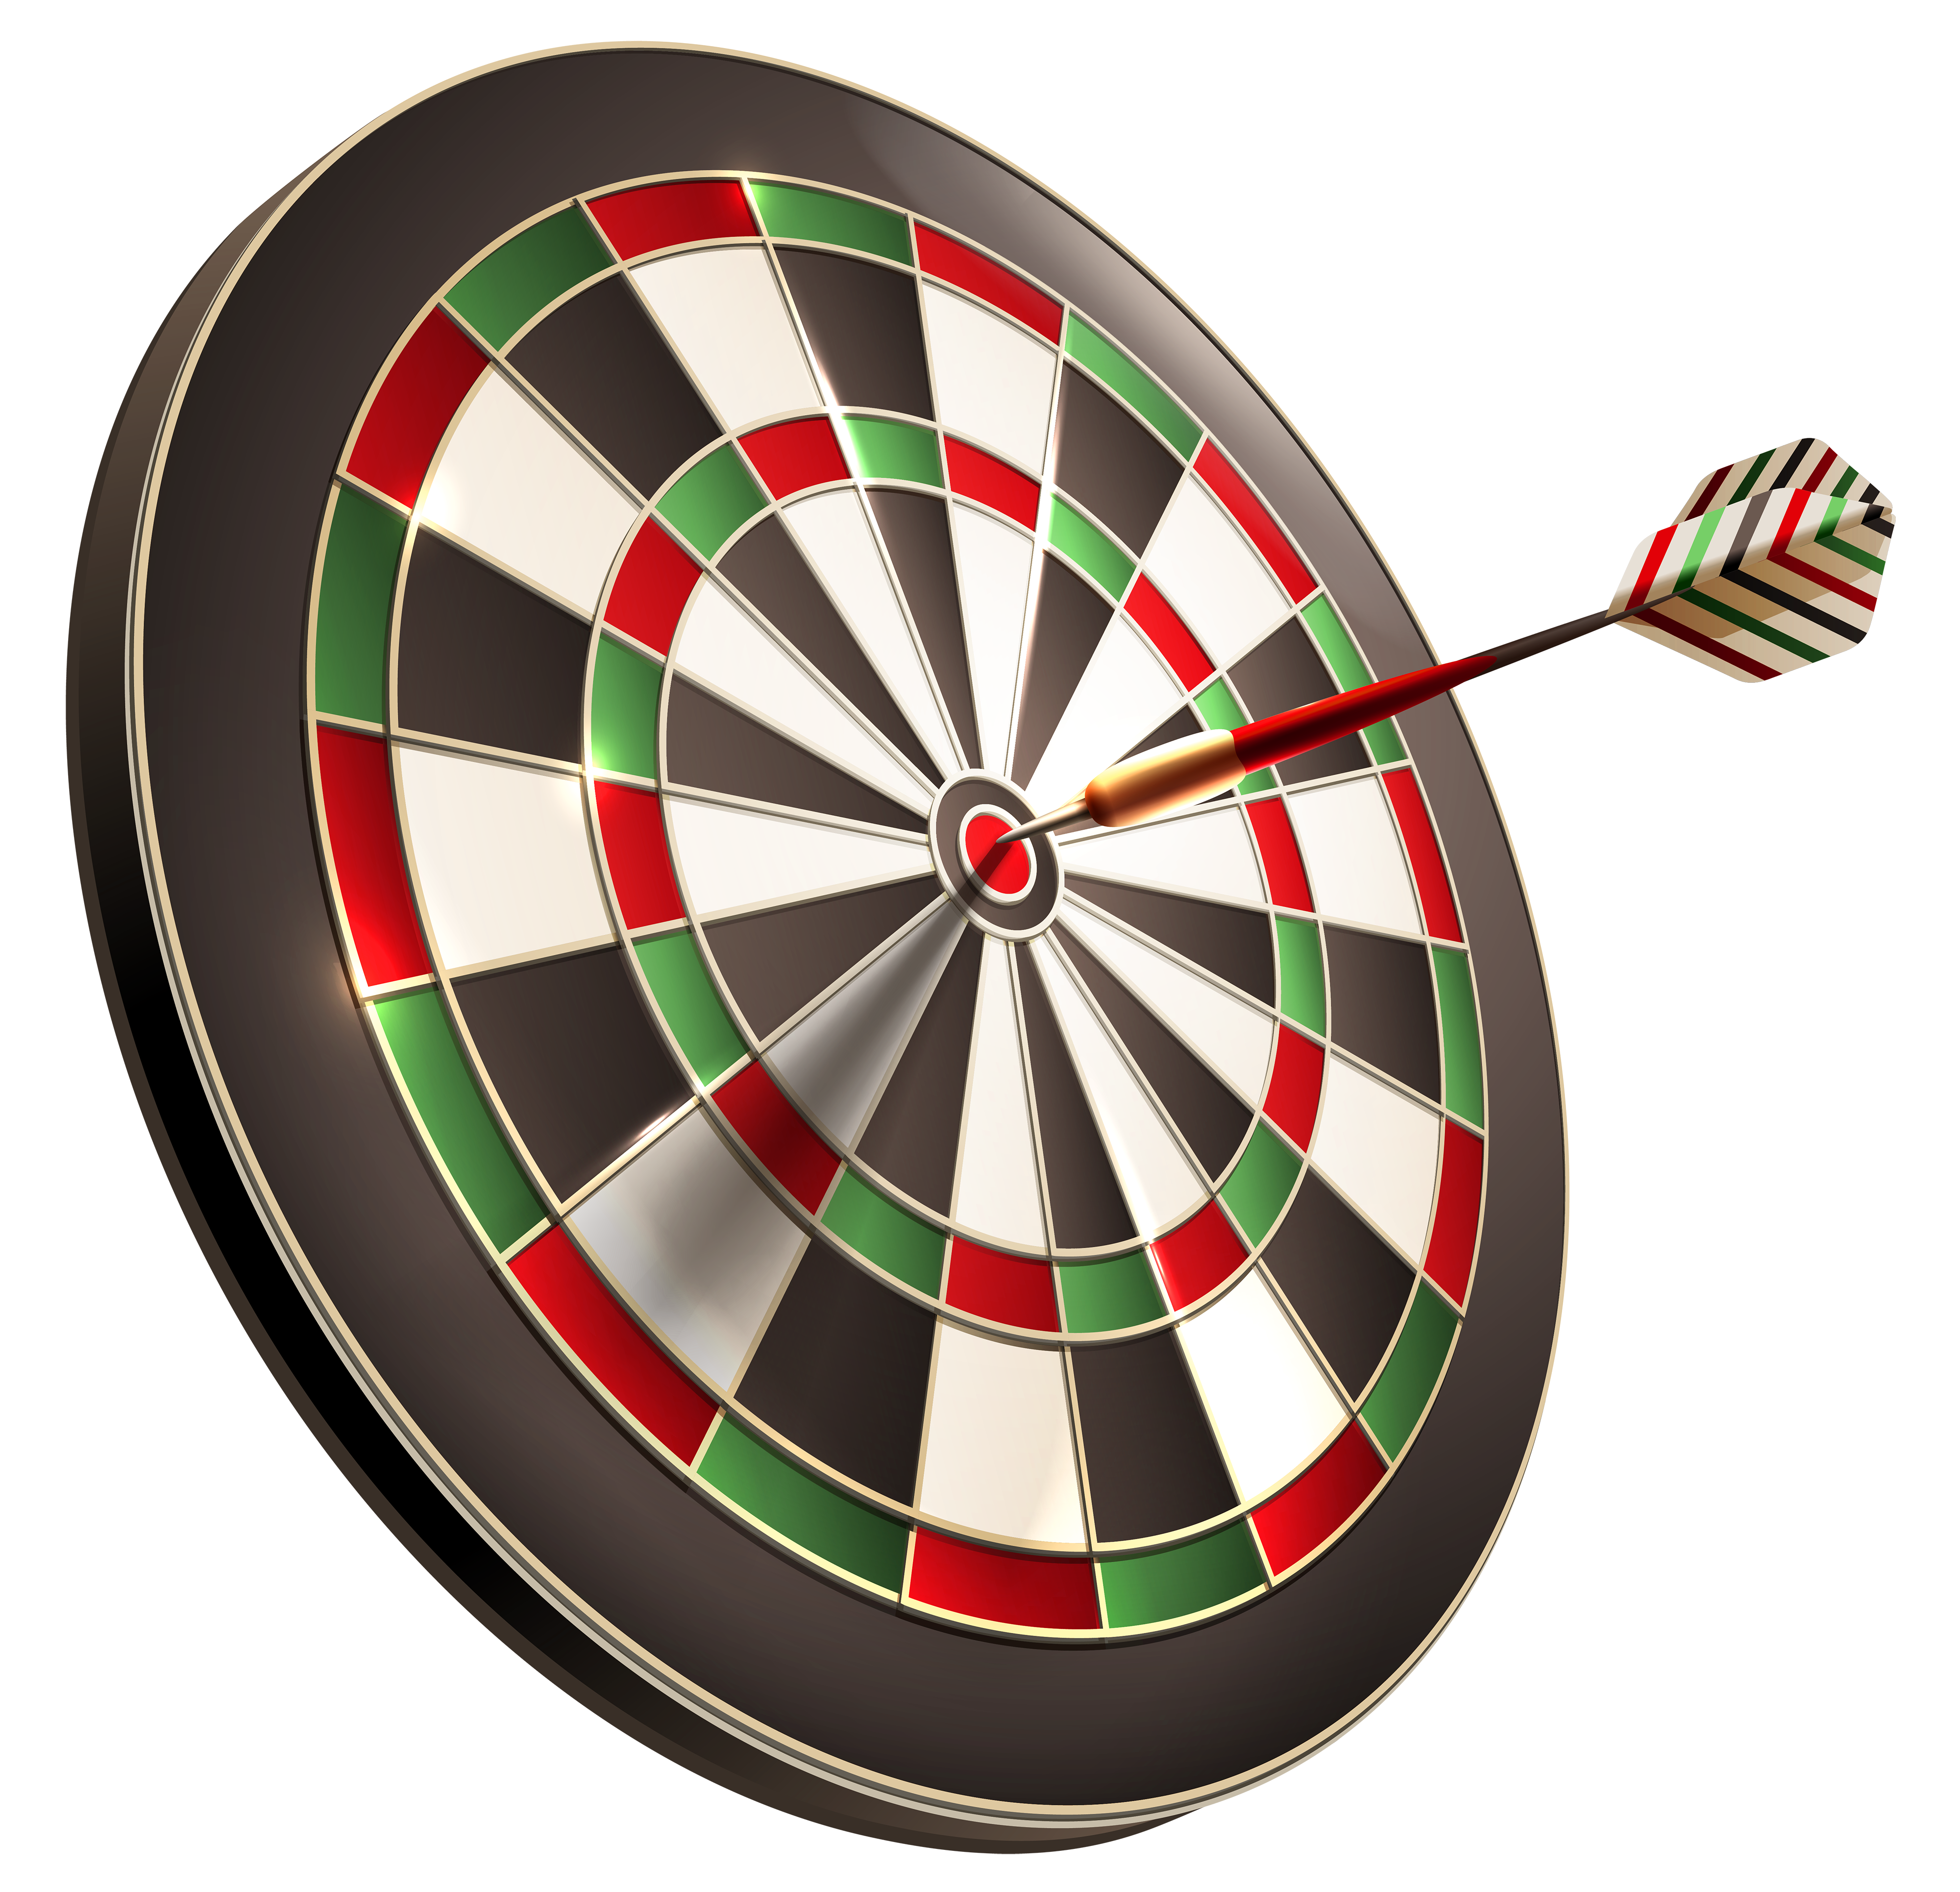 Darts Png Clipart Best Web Clipart Hd Wallpapers